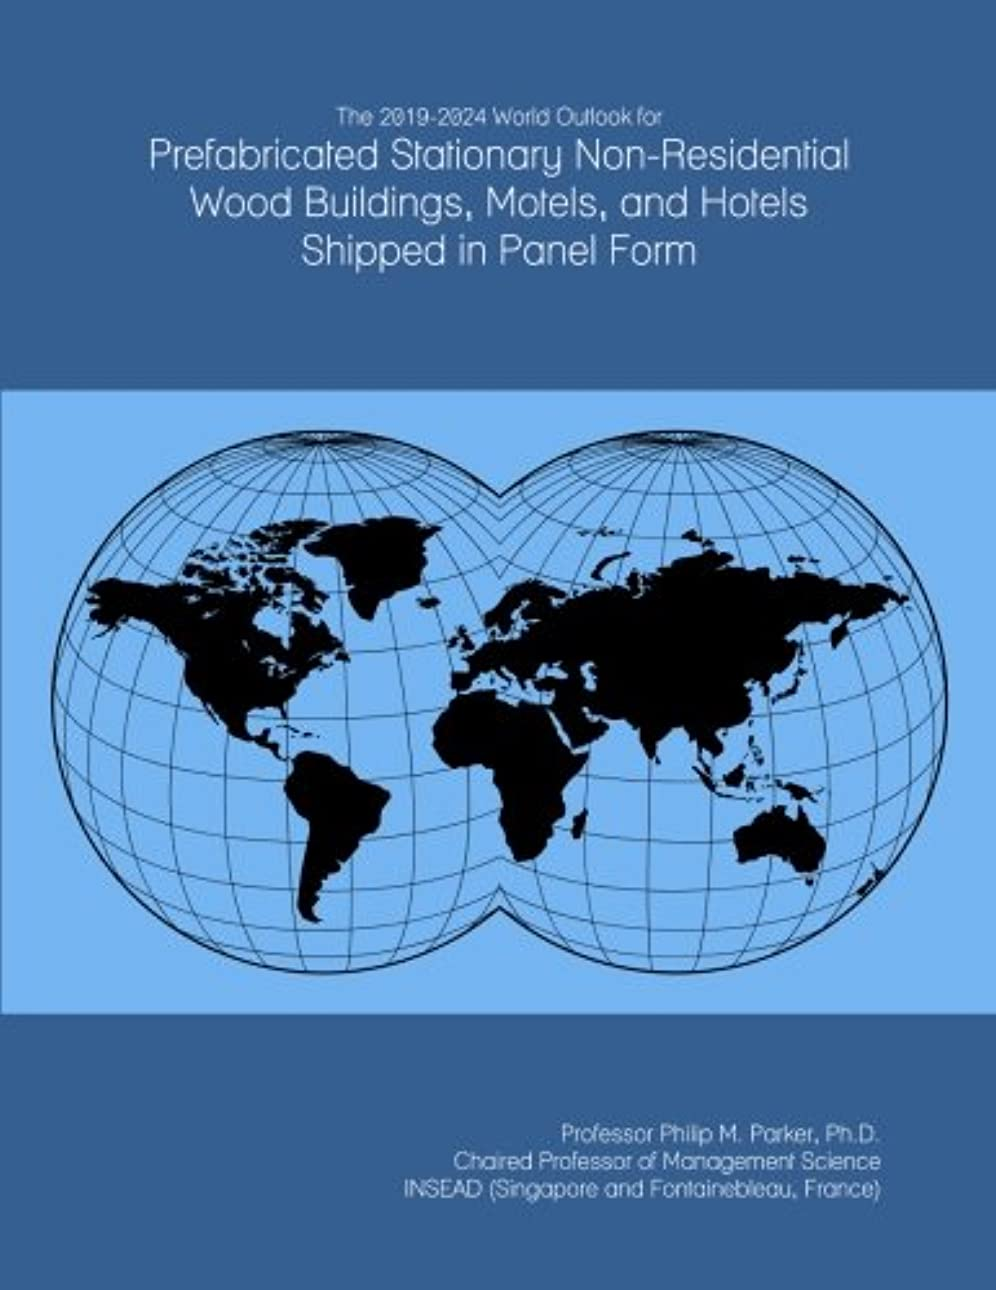 The 2019-2024 World Outlook for Prefabricated Stationary Non-Residential Wood Buildings, Motels, and Hotels Shipped in Panel Form